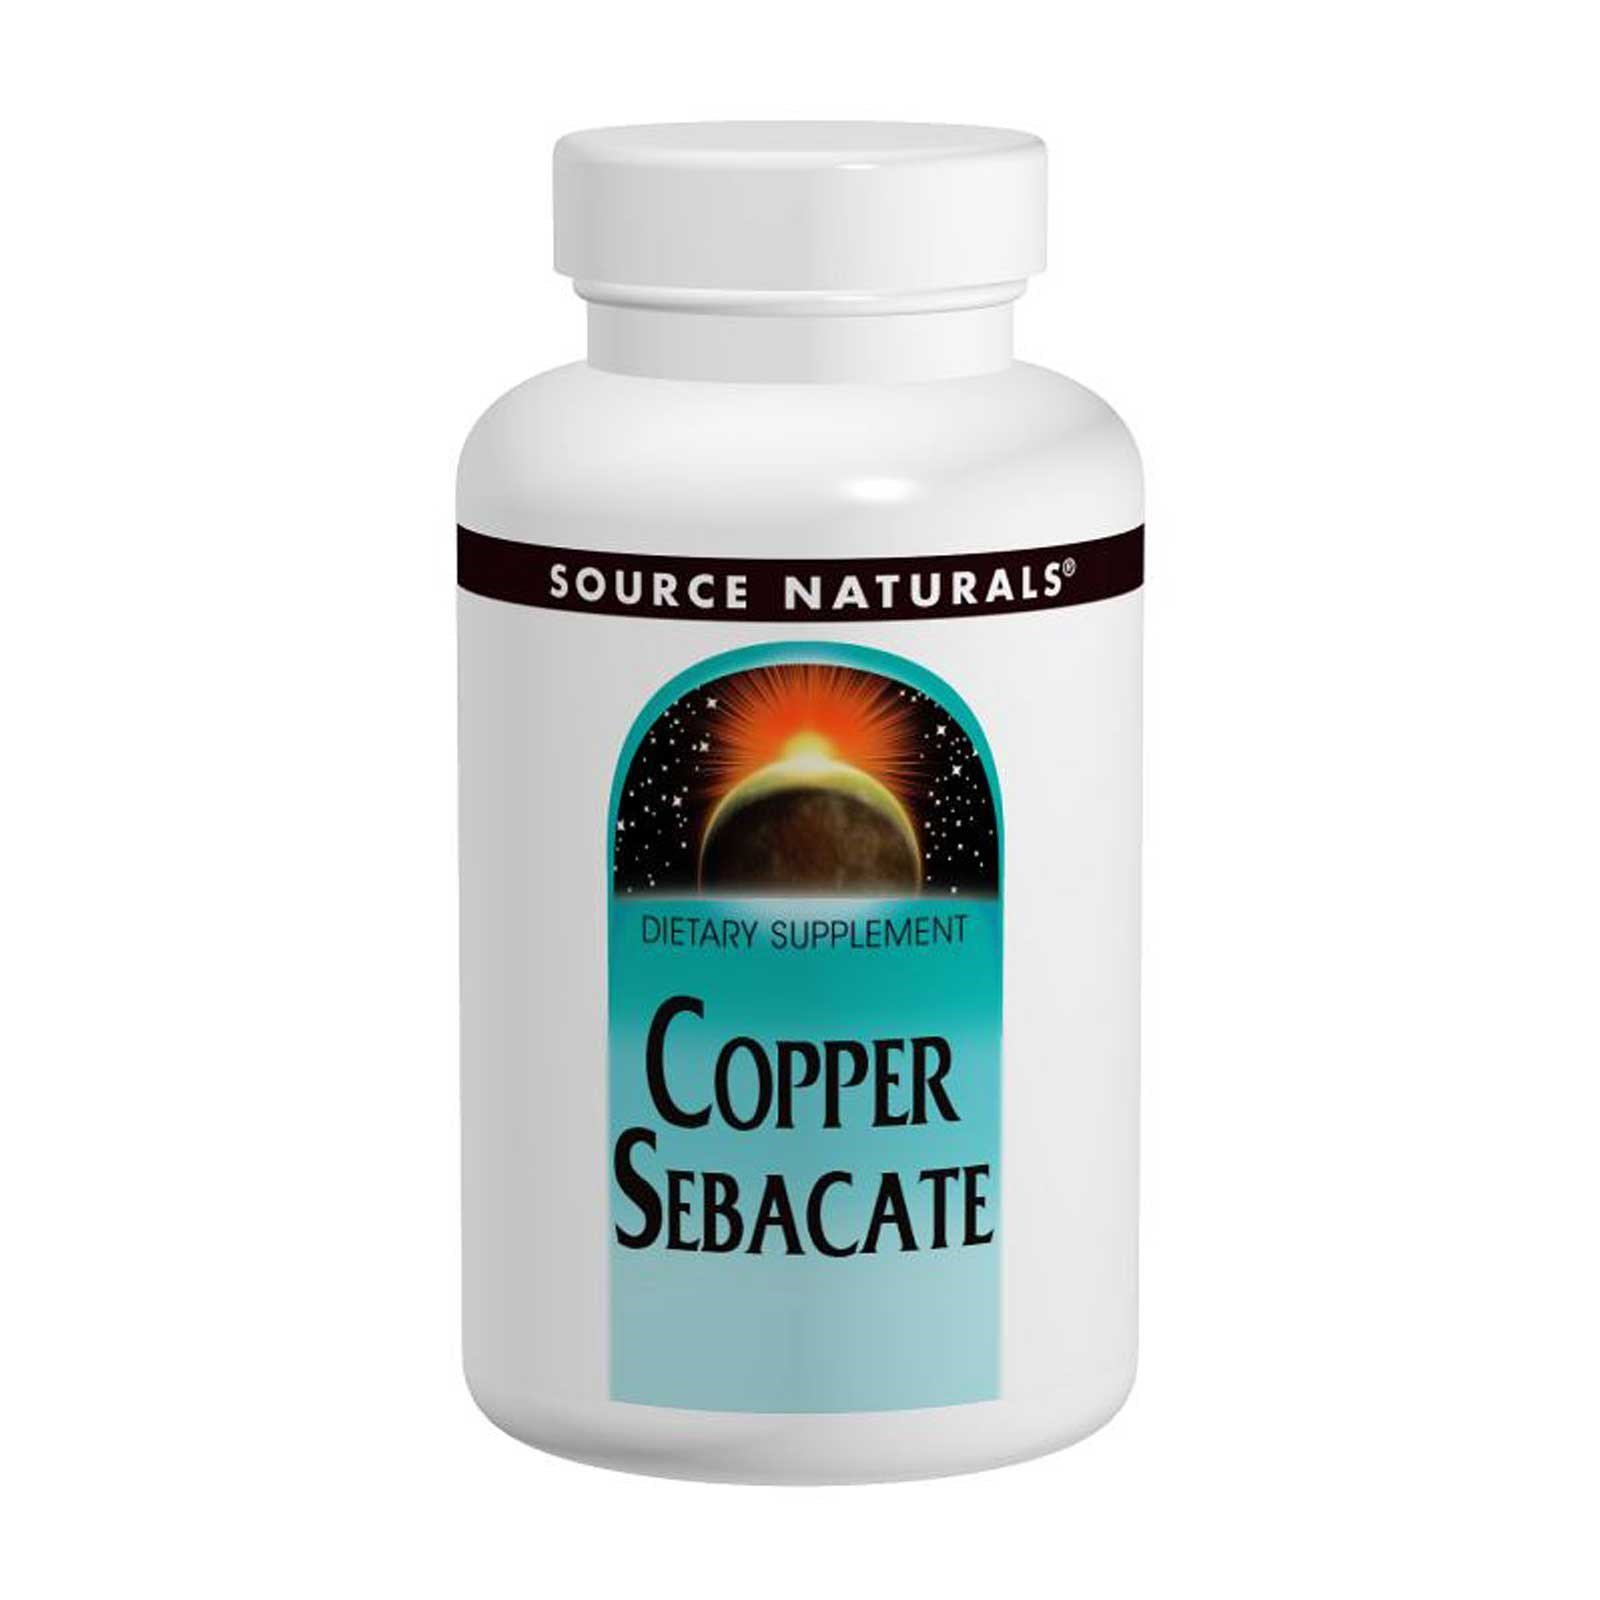 Мідь (Copper Sebacate), Source Naturals, 22мг, 120 таблеток